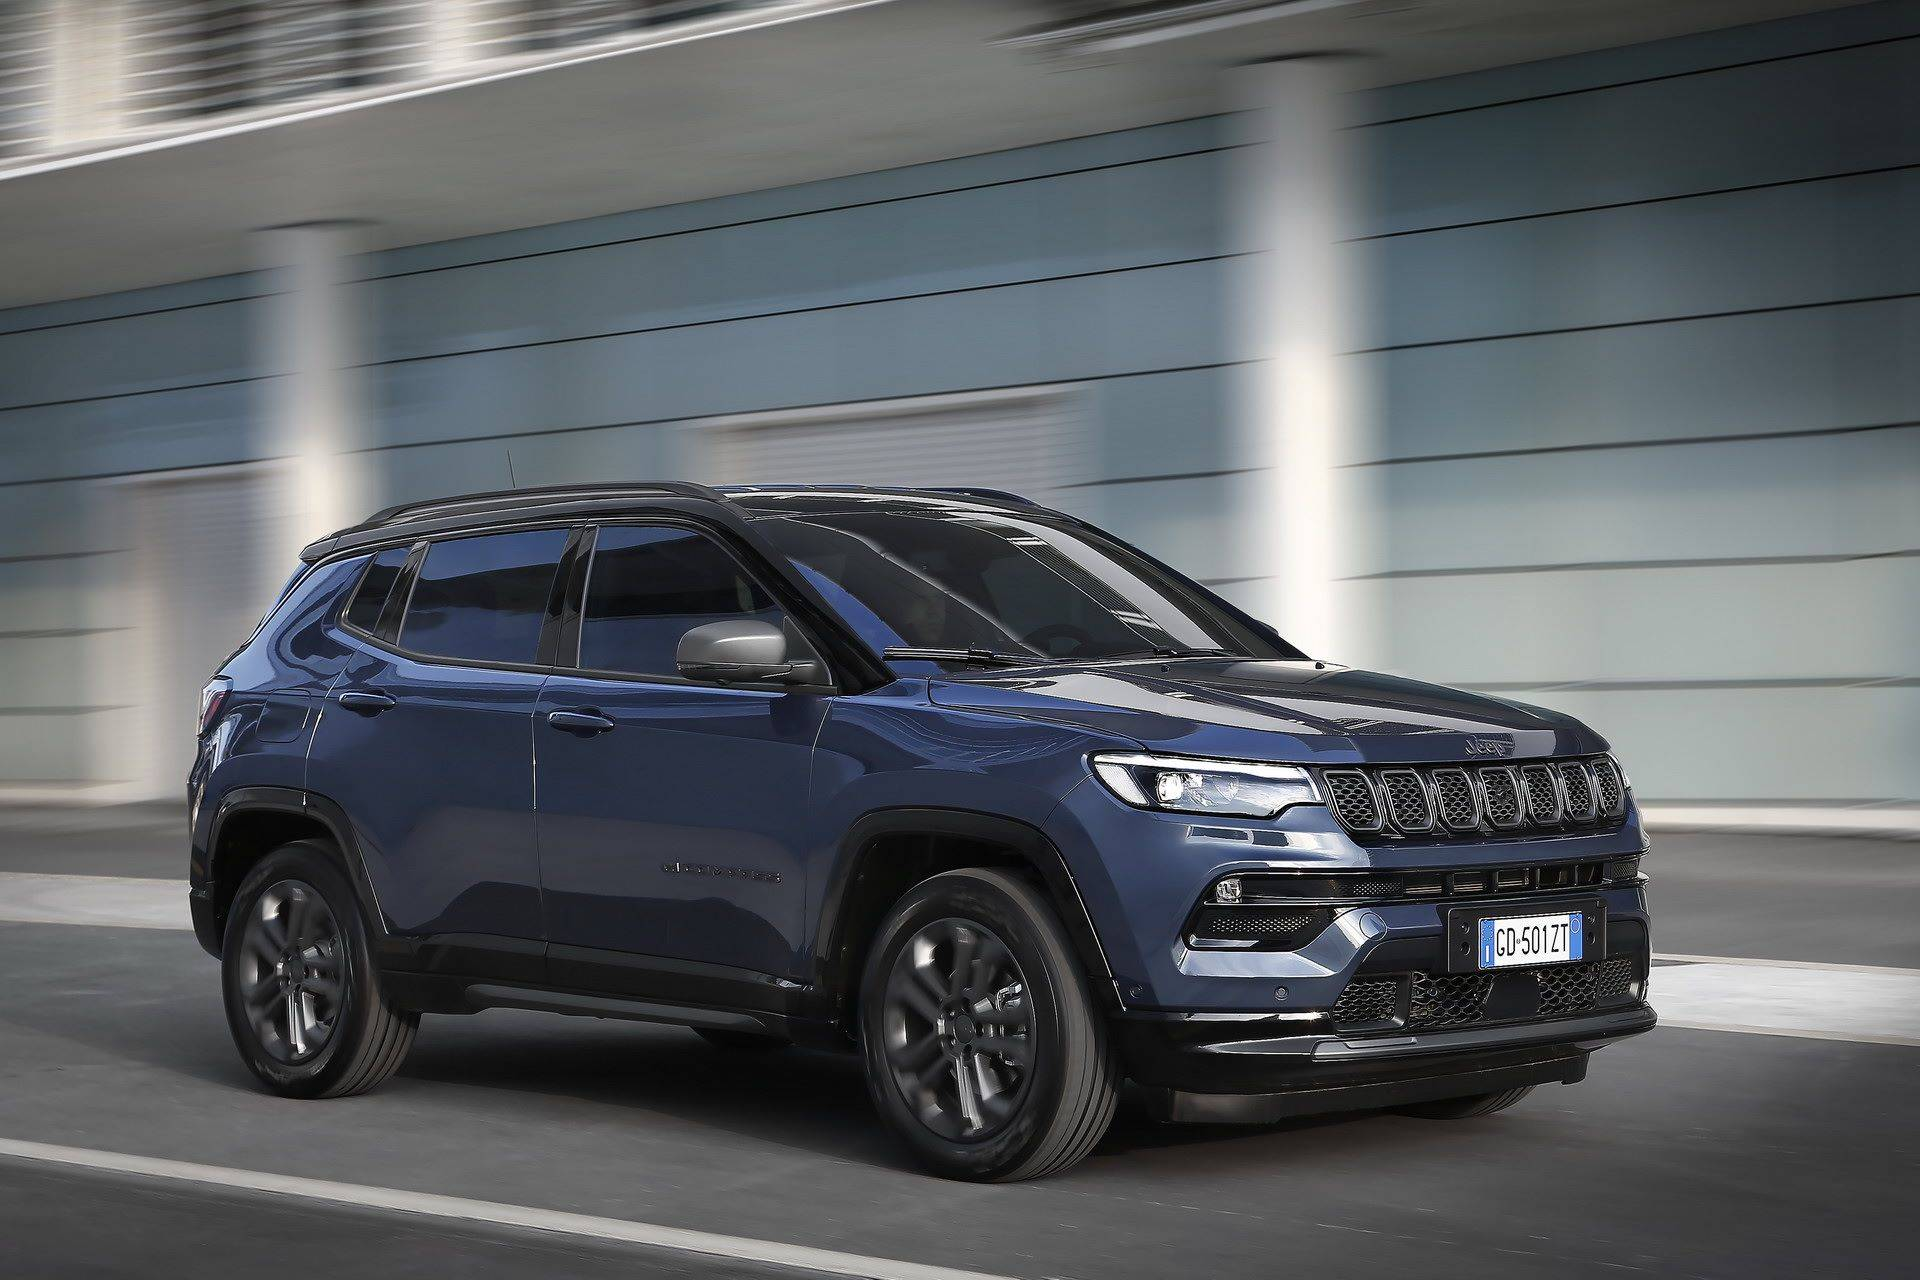 Jeep-Compass-facelift-2021-26